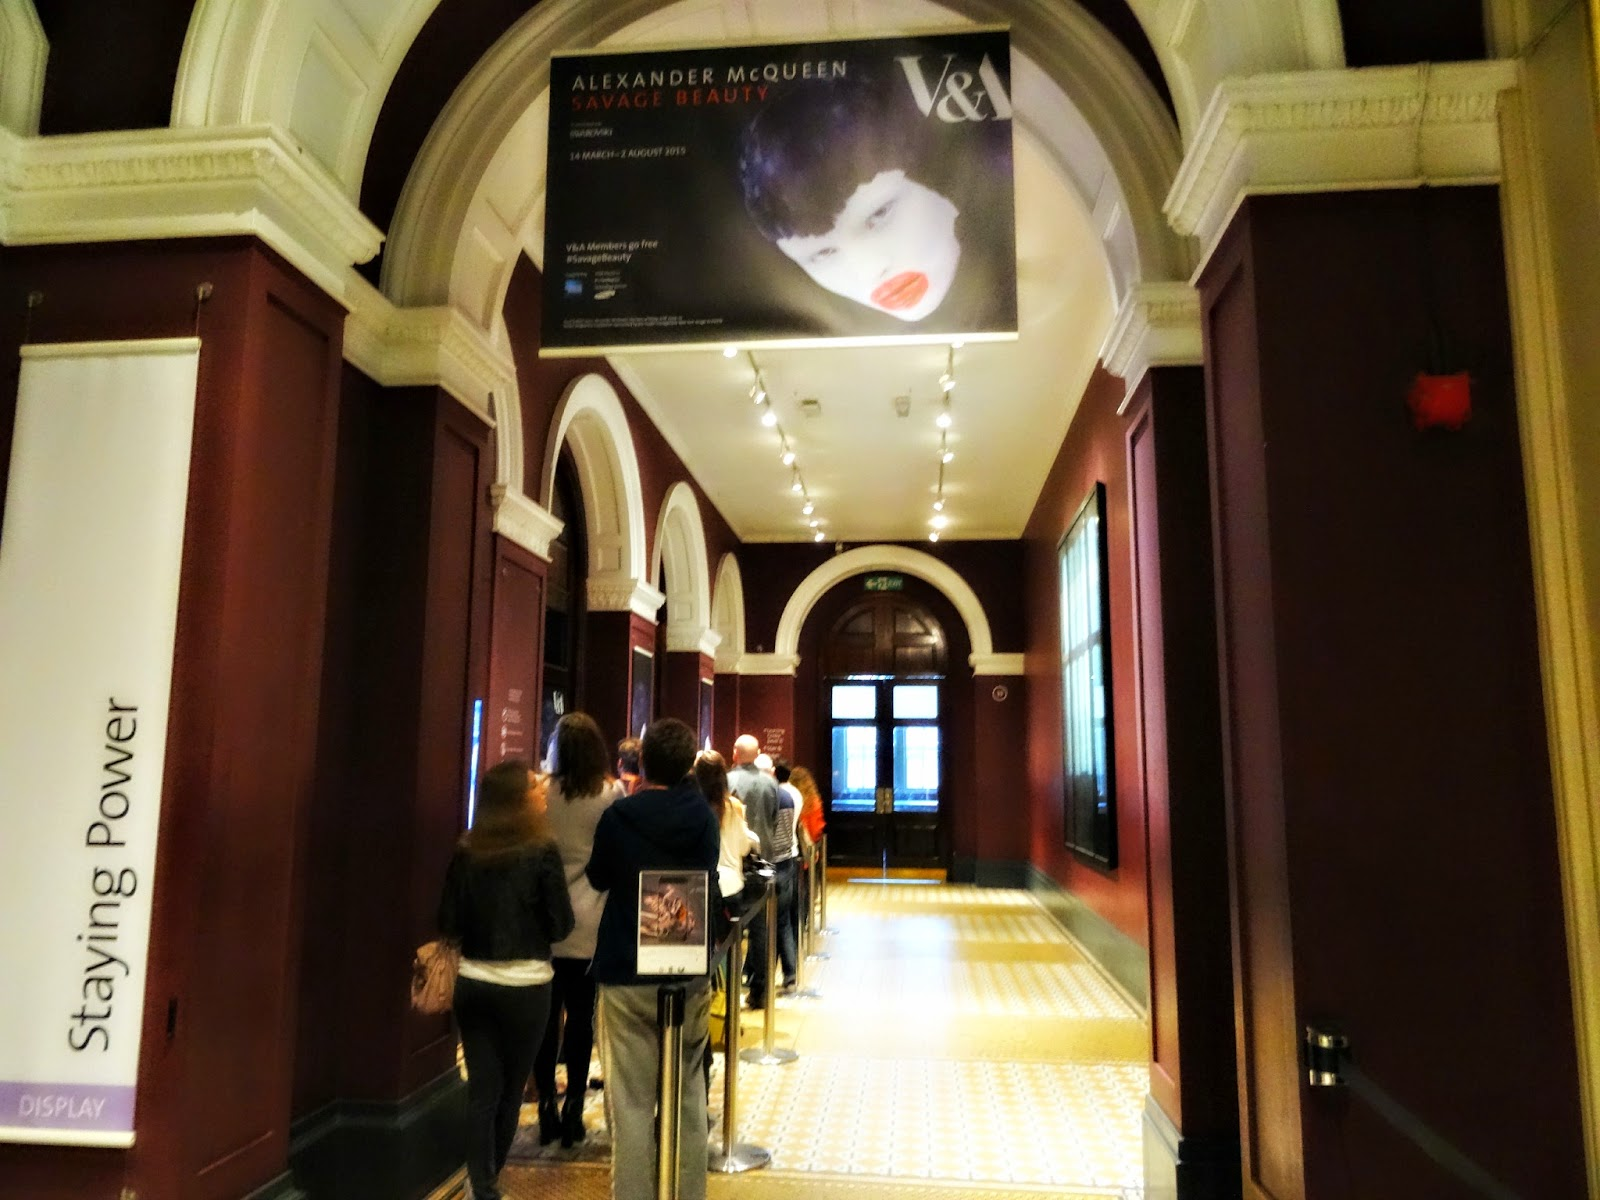 Entrance to Savage Beauty exhibition in London